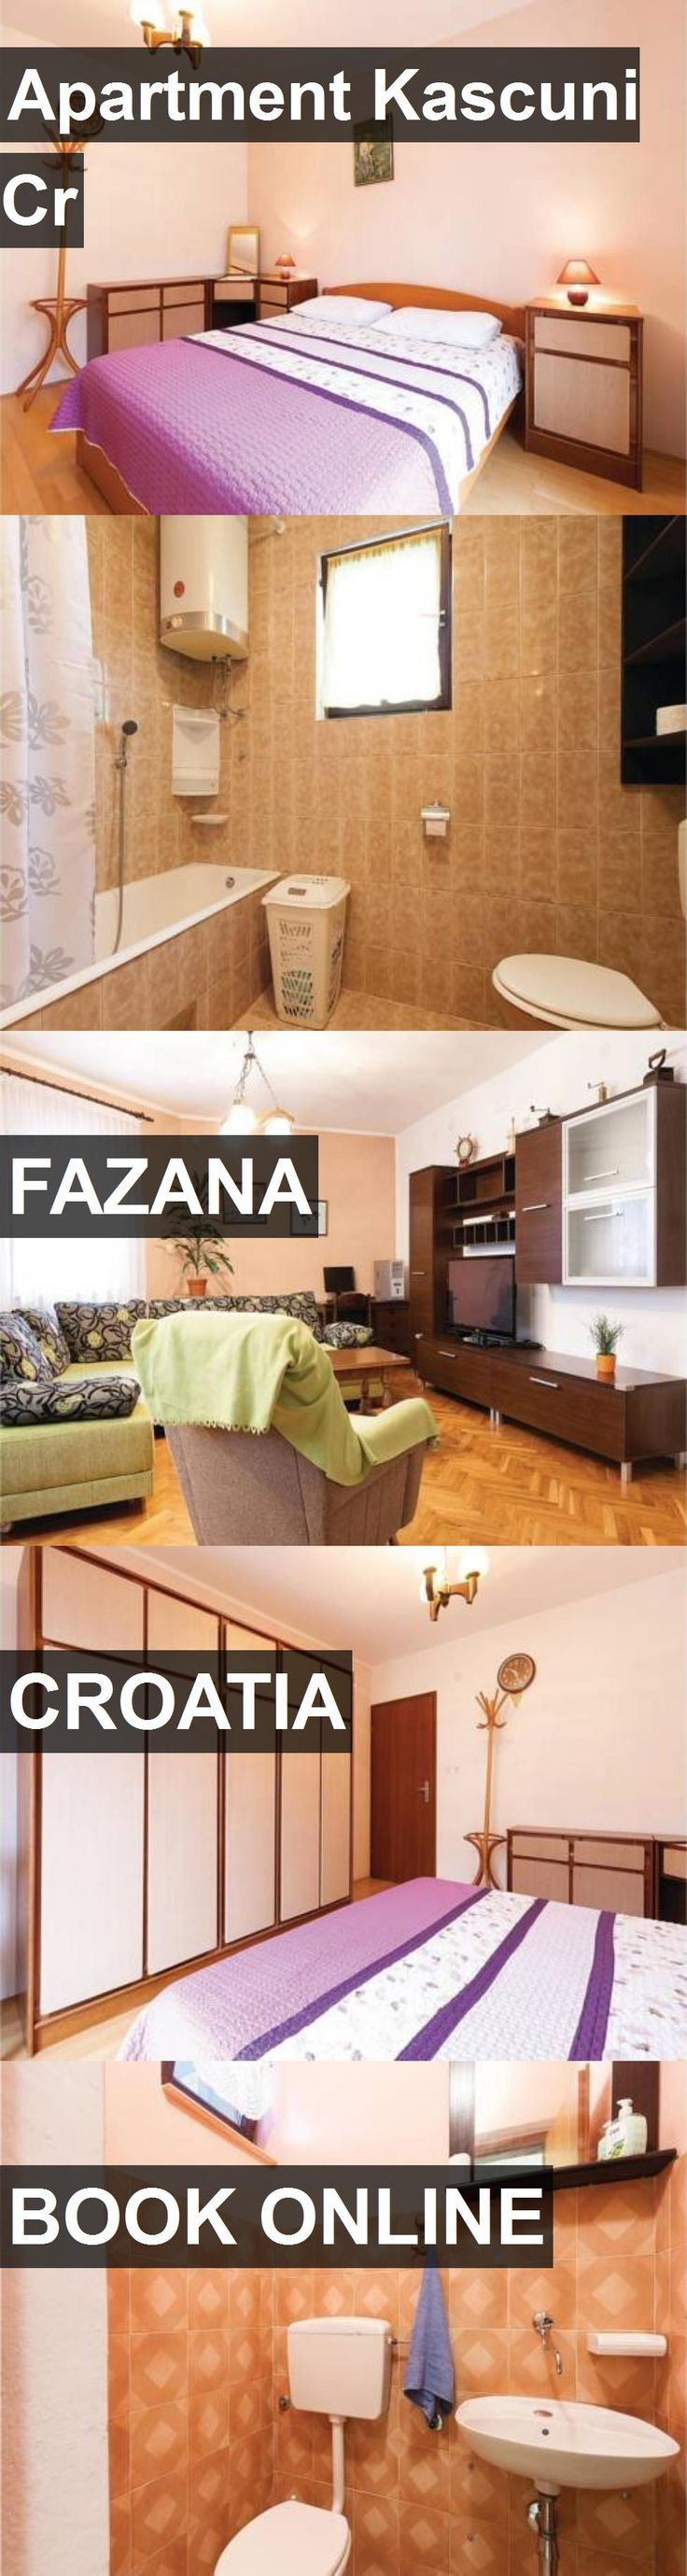 Hotel Apartment Kascuni Cr in Fazana, Croatia. For more information, photos, reviews and best prices please follow the link. #Croatia #Fazana #ApartmentKascuniCr #hotel #travel #vacation